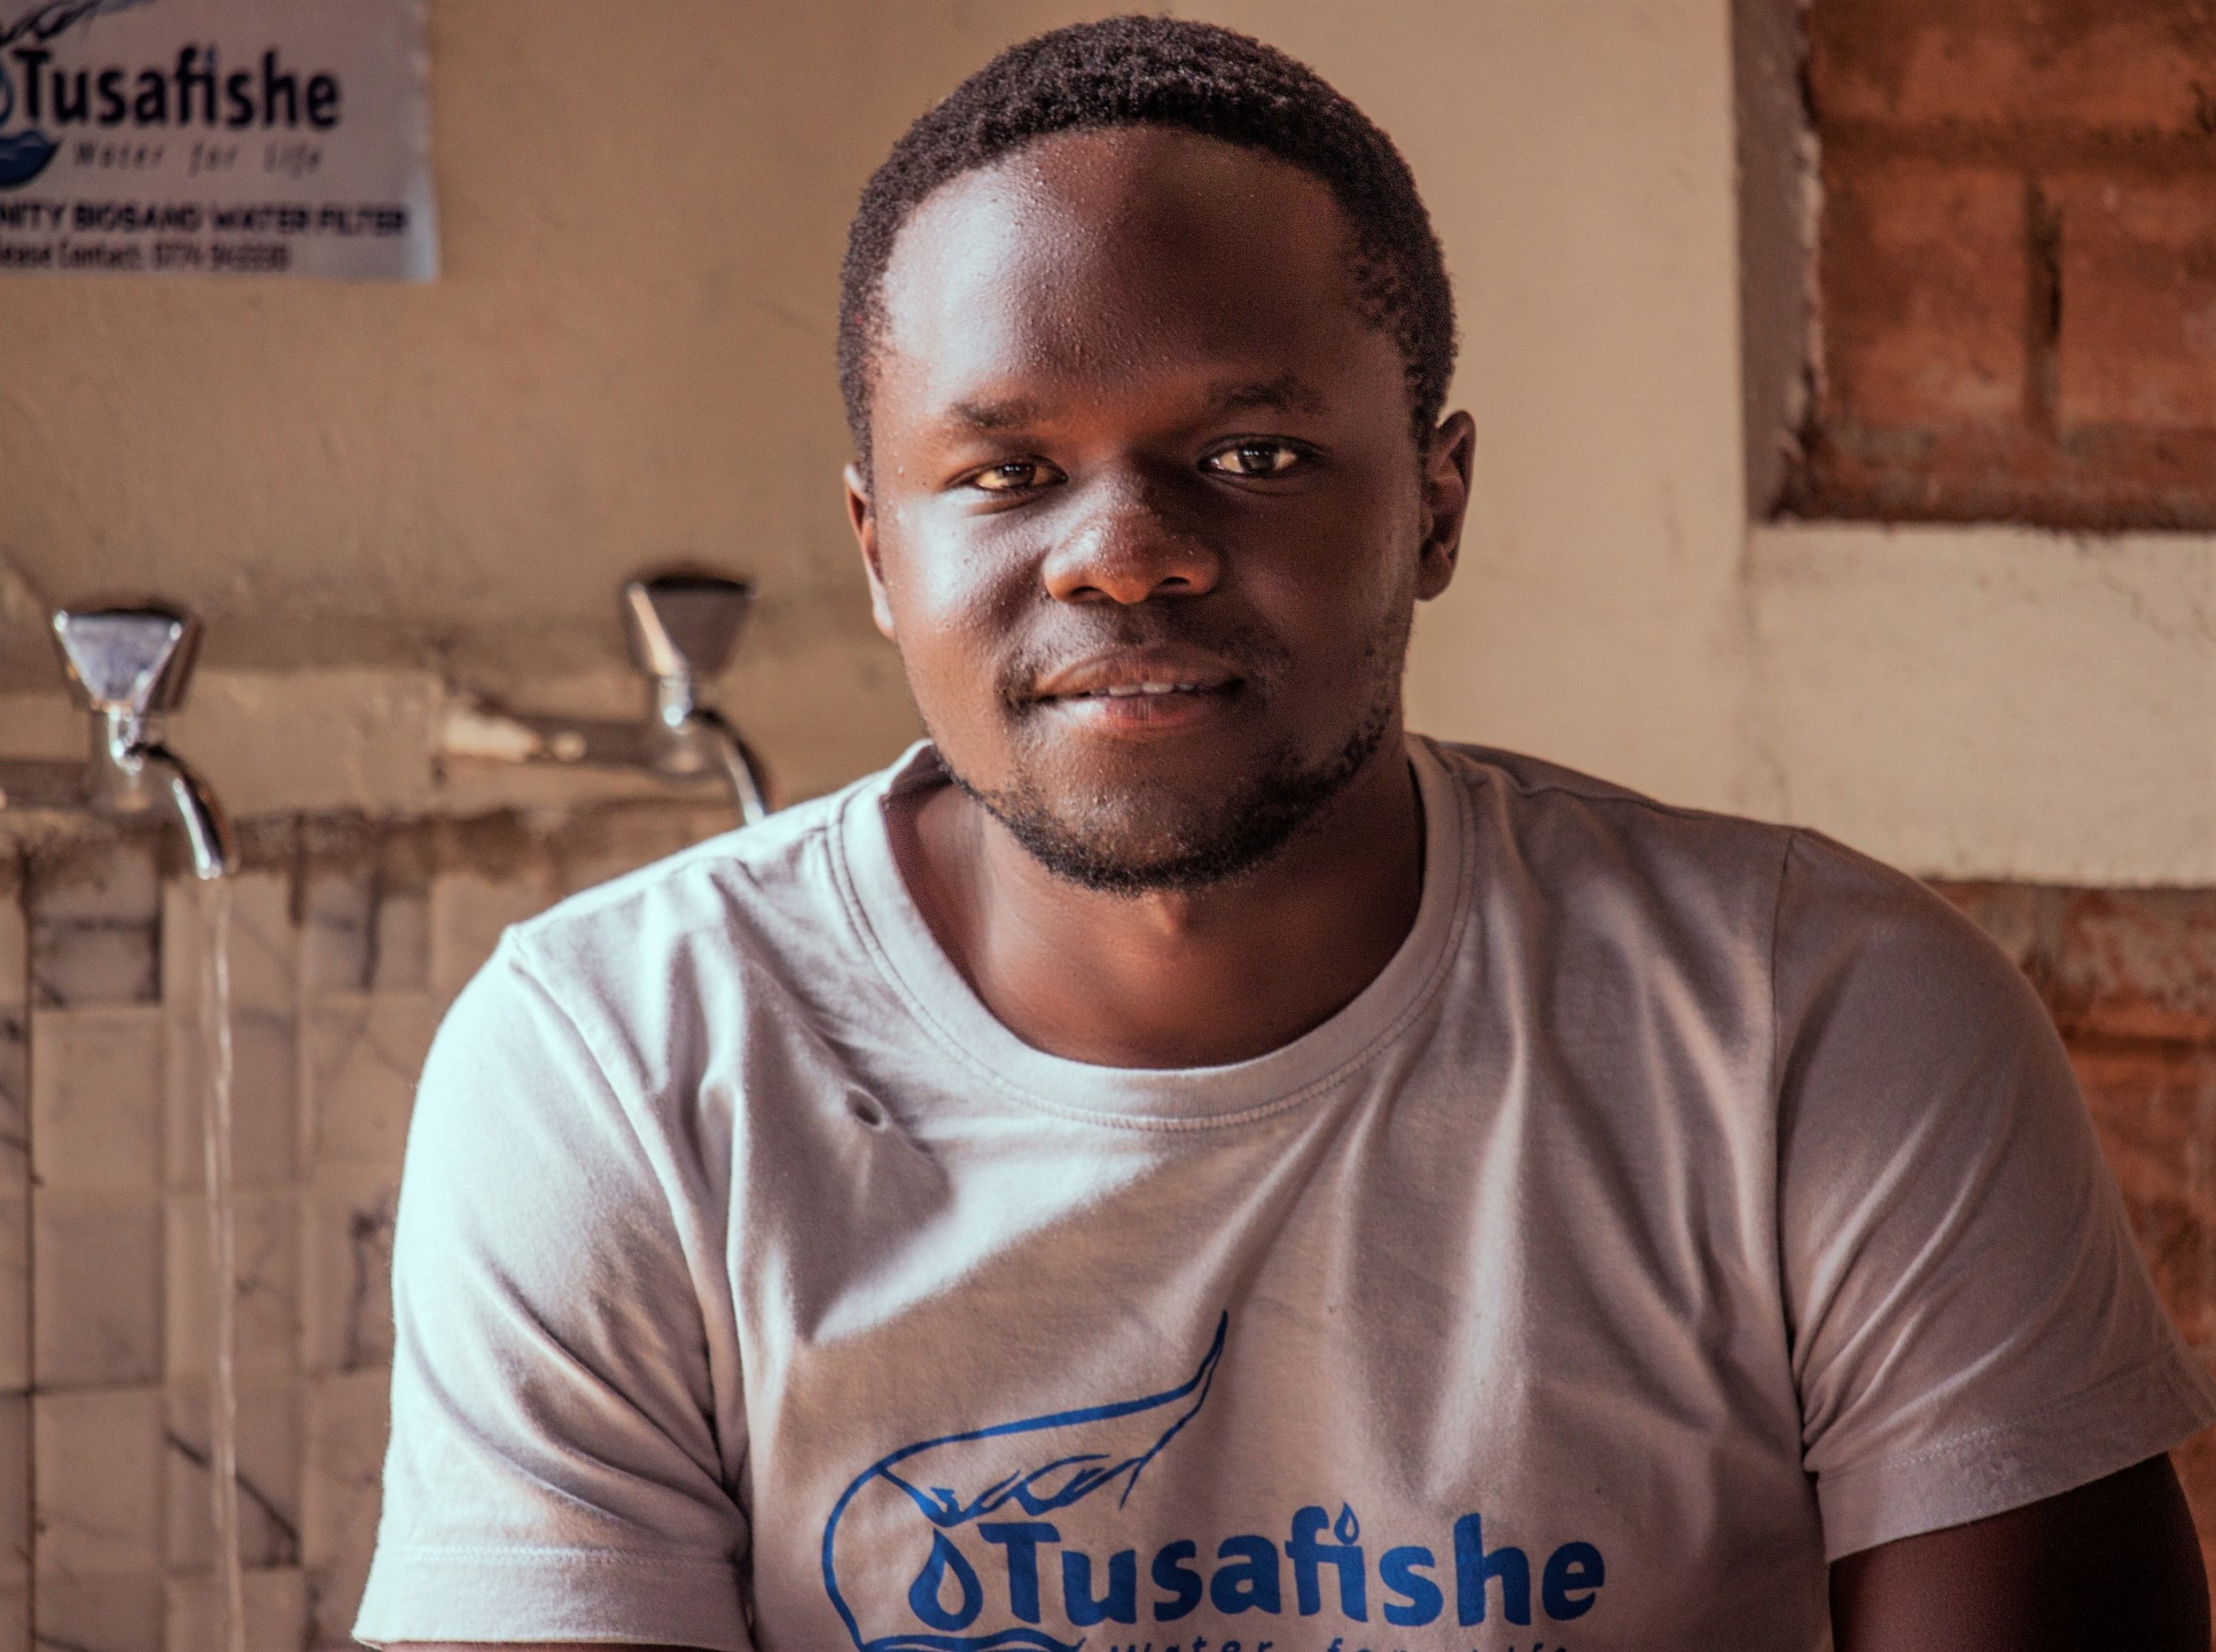 - Tonny Wamboga is the co-founder of Tusafishe and is completely passionate about water.He grew up in rural Uganda fetching water from a contaminated wells, having to walk 1.5kms to take the water home. He regularly fell sick and decided to do something about this problem, which many Ugandans face.As a scholar of the Social Innovation Academy (SINA), Tonny started the production of affordable water filters, using locally available resources. Tusafishe was born.Our planet has only 2.5% fresh waters and the wars of the future will probably be about access to drinking water. Already today, one-third of the African population has no access to safe drinking water and in Uganda it is almost half of the population. As a result of contaminated waters, 75% of all diseases in Uganda are waterborne.Tusafishe builds low-cost bio-sand water filter systems for safe and clean drinking water. With Tusafishe water is filtered through a natural process using granite sand. Bacteria and viruses are removed and safe water with nutritious minerals produced. The process emulates nature's way of filtering water through its soils and springs.Water filters are provided to rural public secondary schools in Uganda, who need them the most. One filter can supply up to 2000 students on a daily basis. Tusafishe also conducts trainings and sensitizations for communities to eradicate waterborne diseases and equip students with the skills to build and maintain filters using available resources, so as to replicate the solution in their homes.The goal is to eradicate waterborne diseases in Uganda by 2050.http://www.socialinnovationacademy.org/tusafishe/